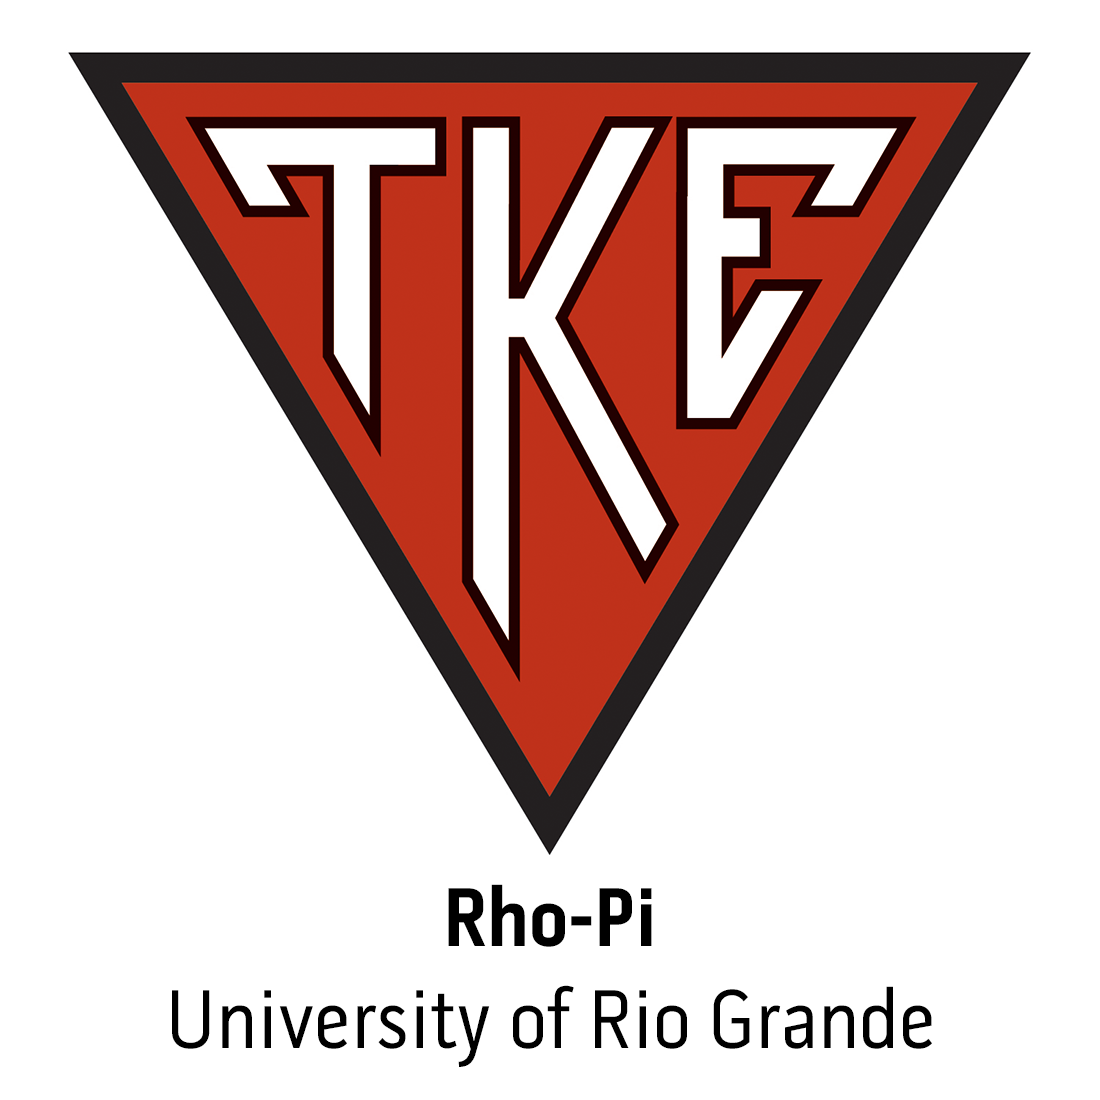 Rho-Pi C at University of Rio Grande